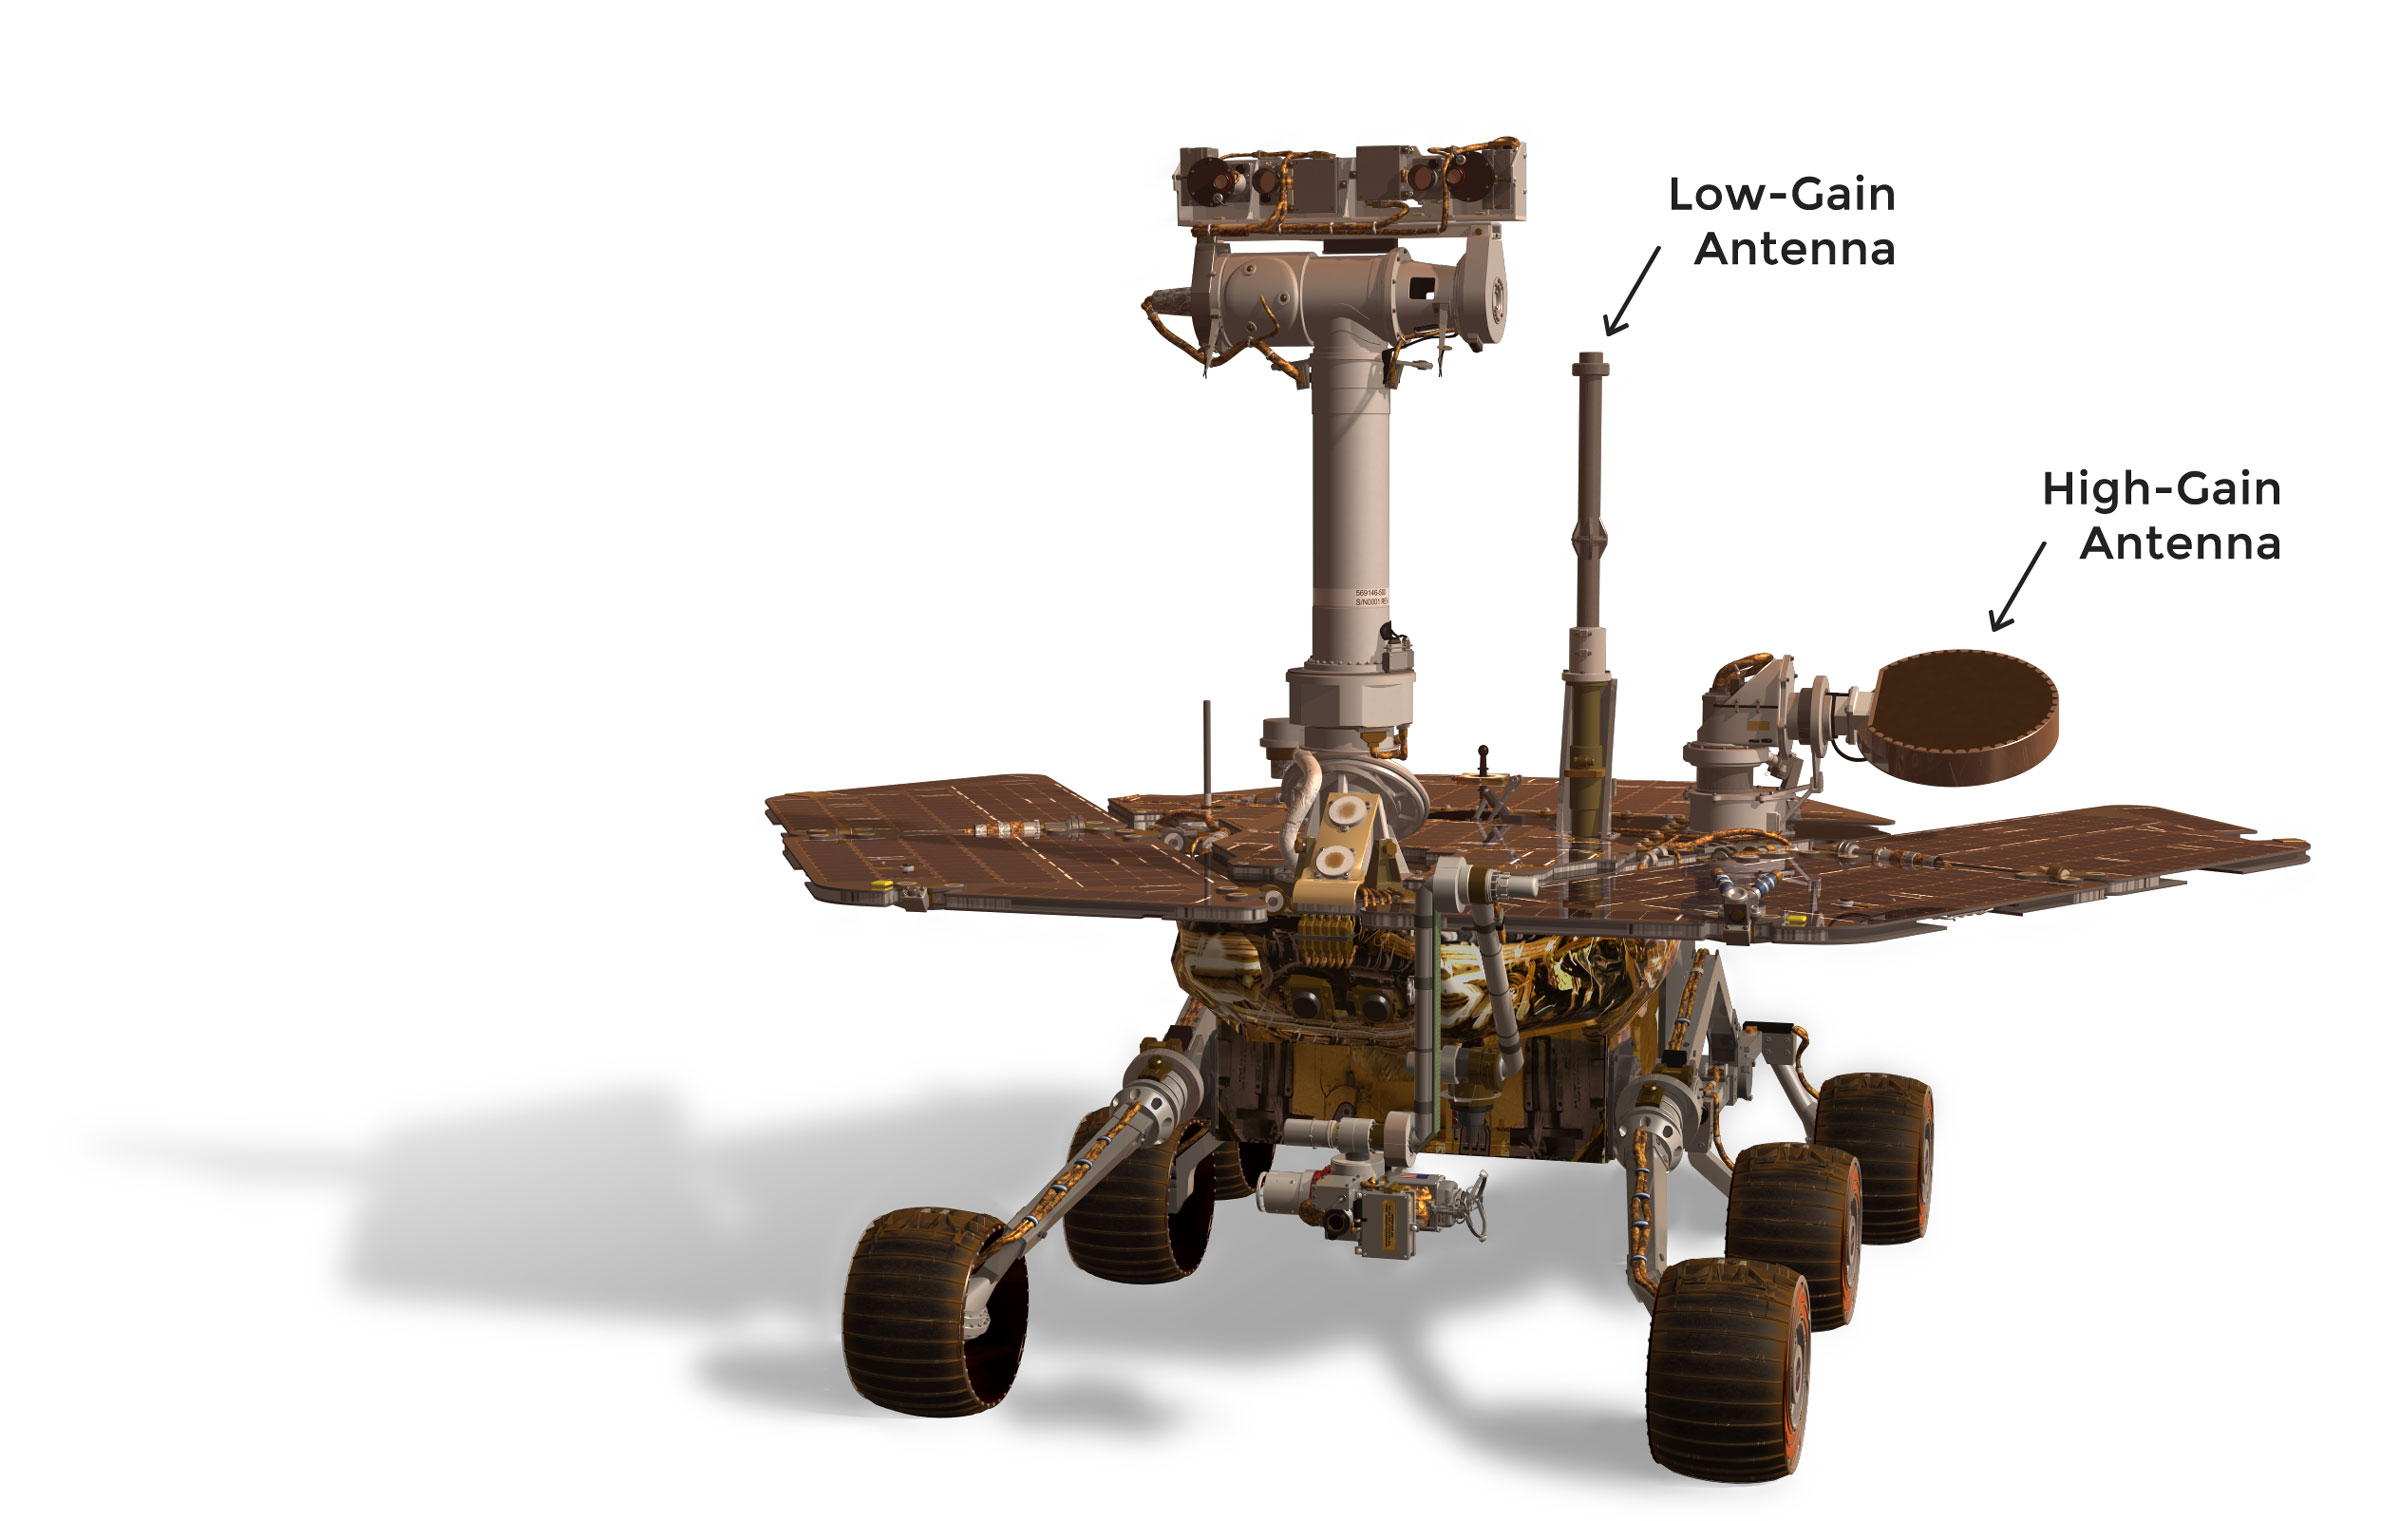 Mars Exploration Rover Antennas